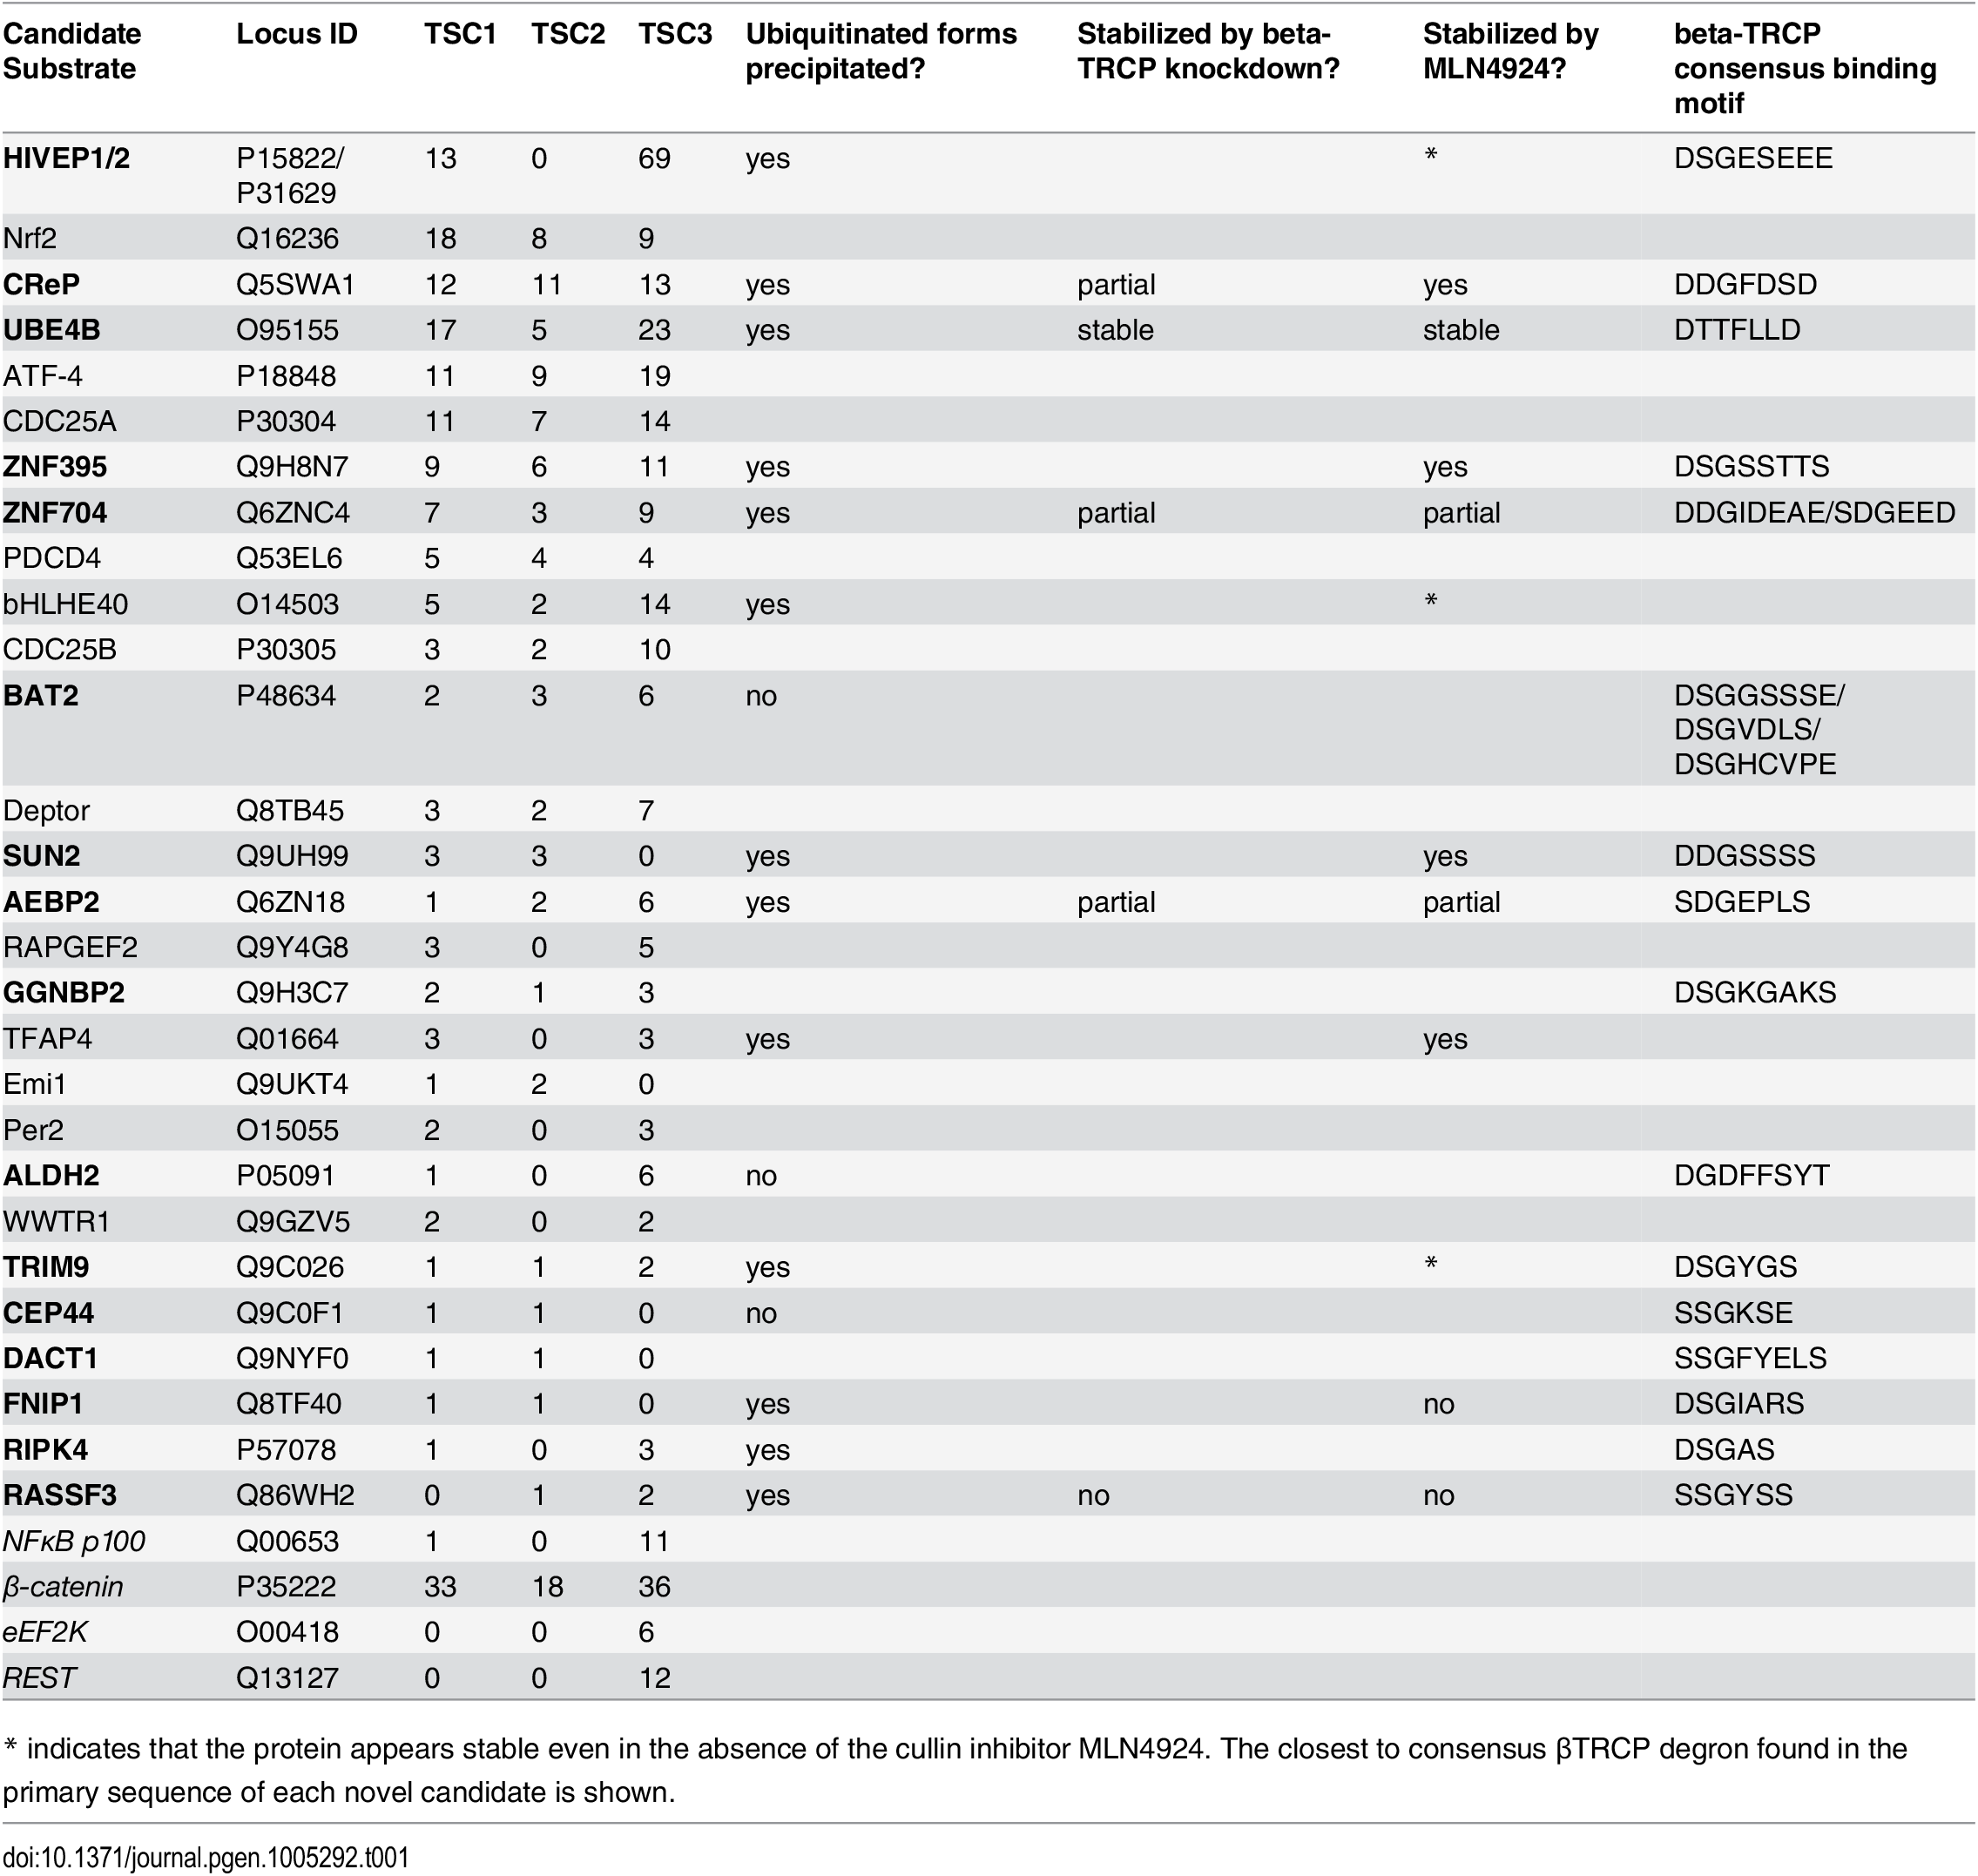 Discovery and validation summary for identified βTRCP substrates.